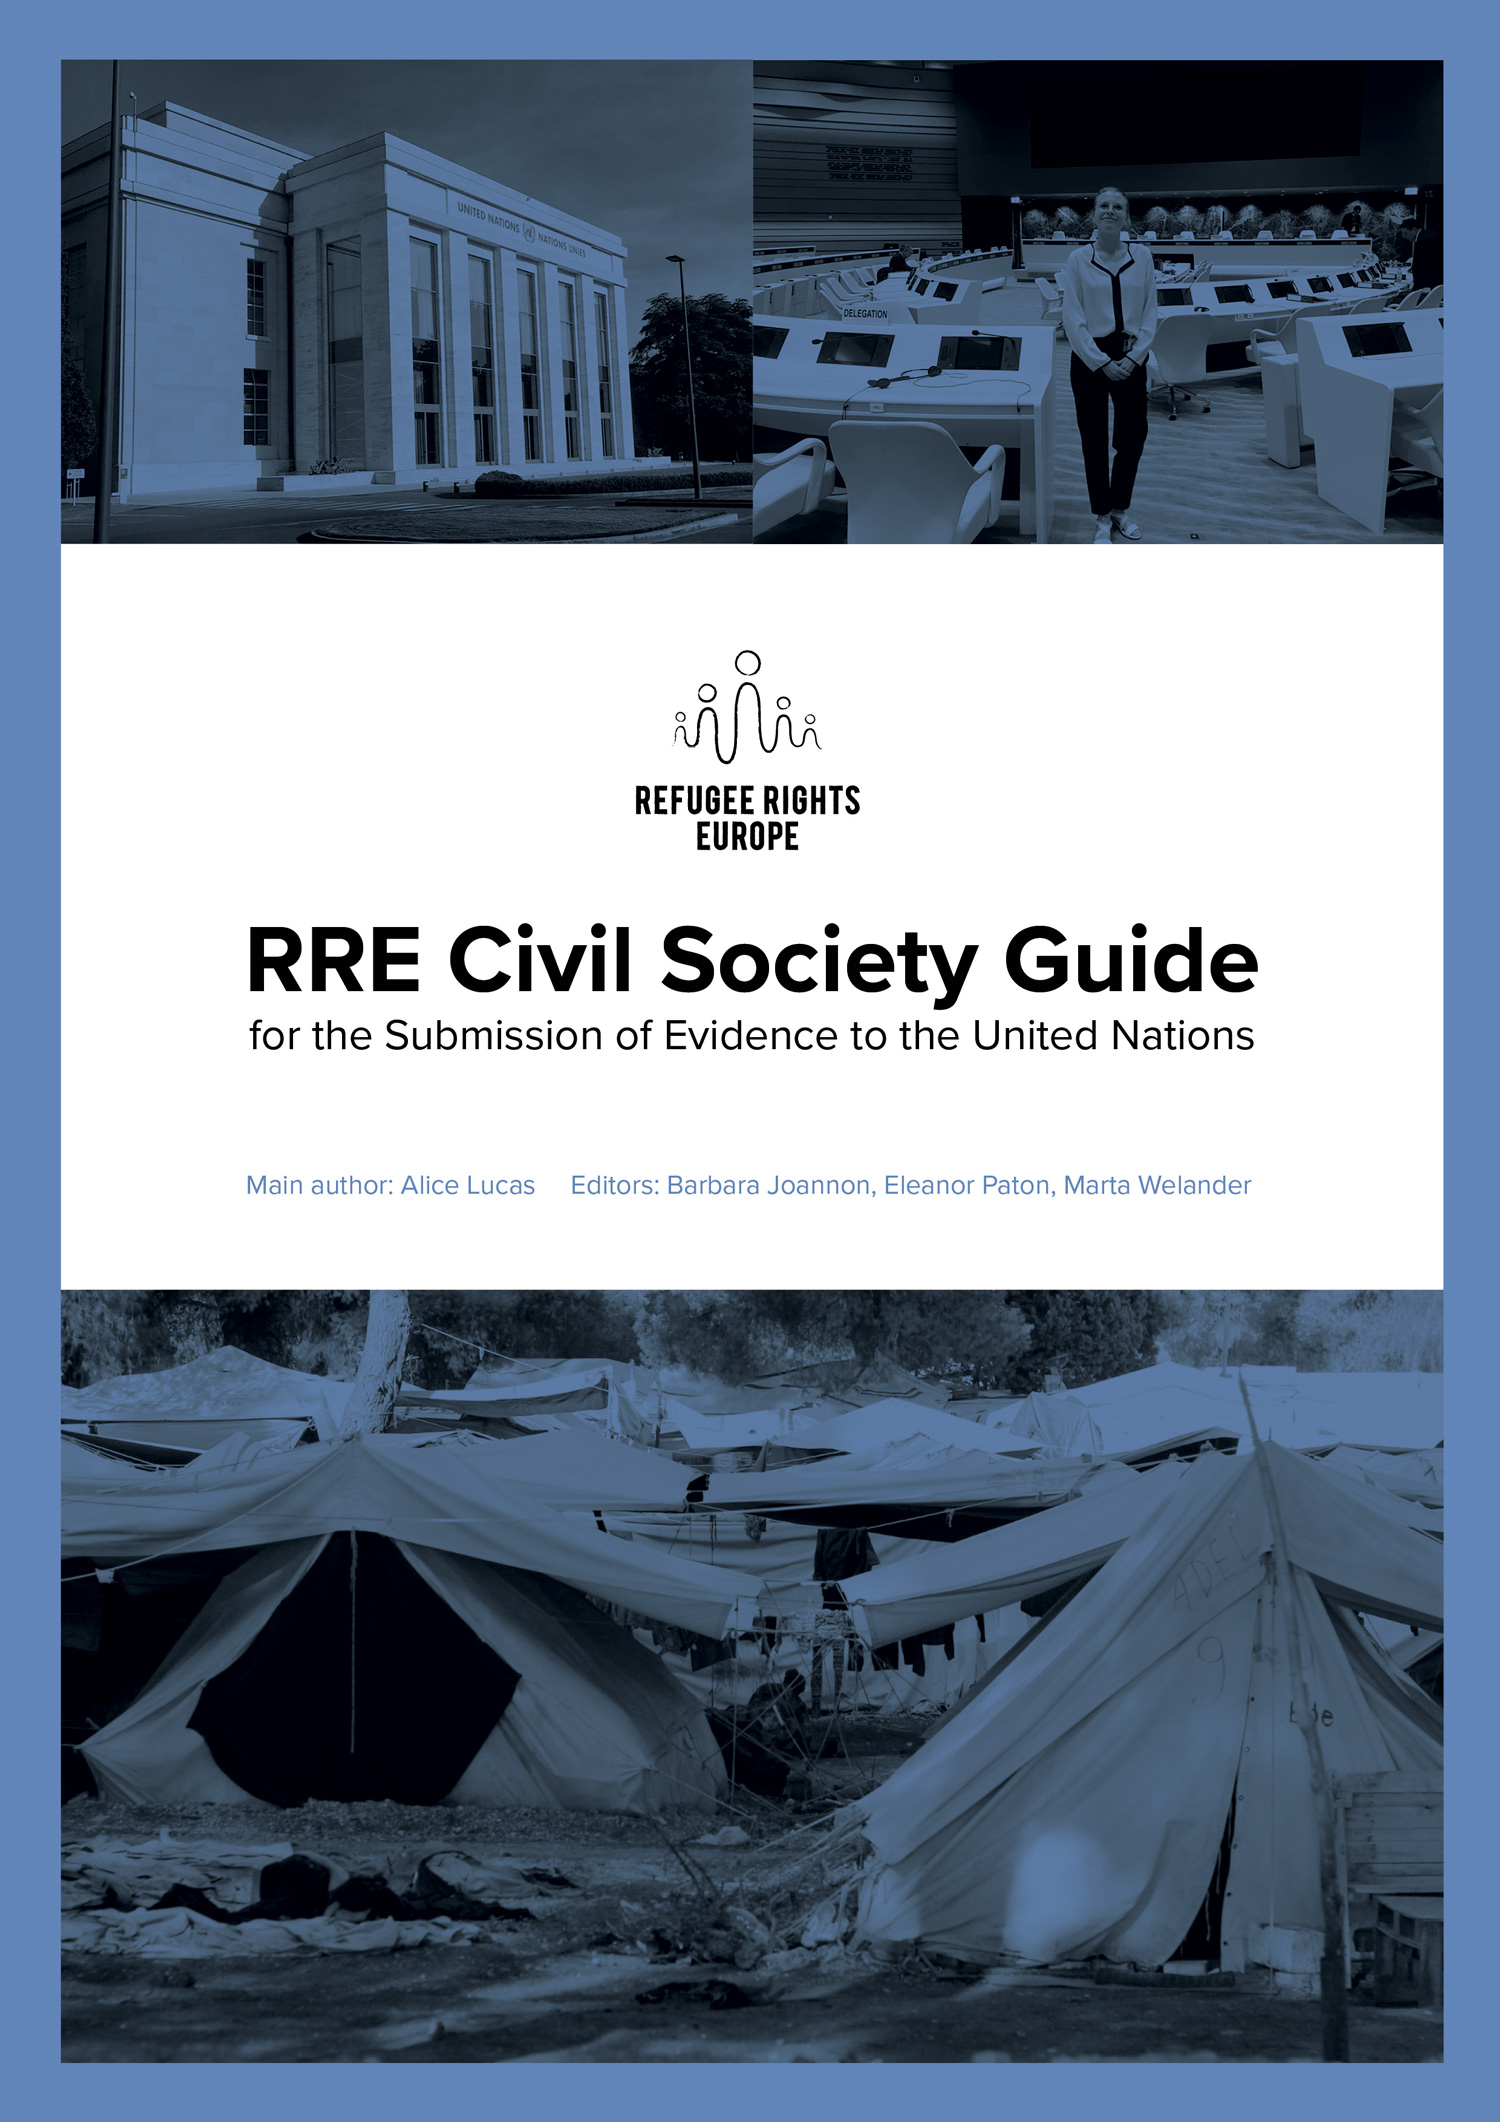 Refugee Rights Europe Civil Society Guide for the Submission of Evidence to the United Nations